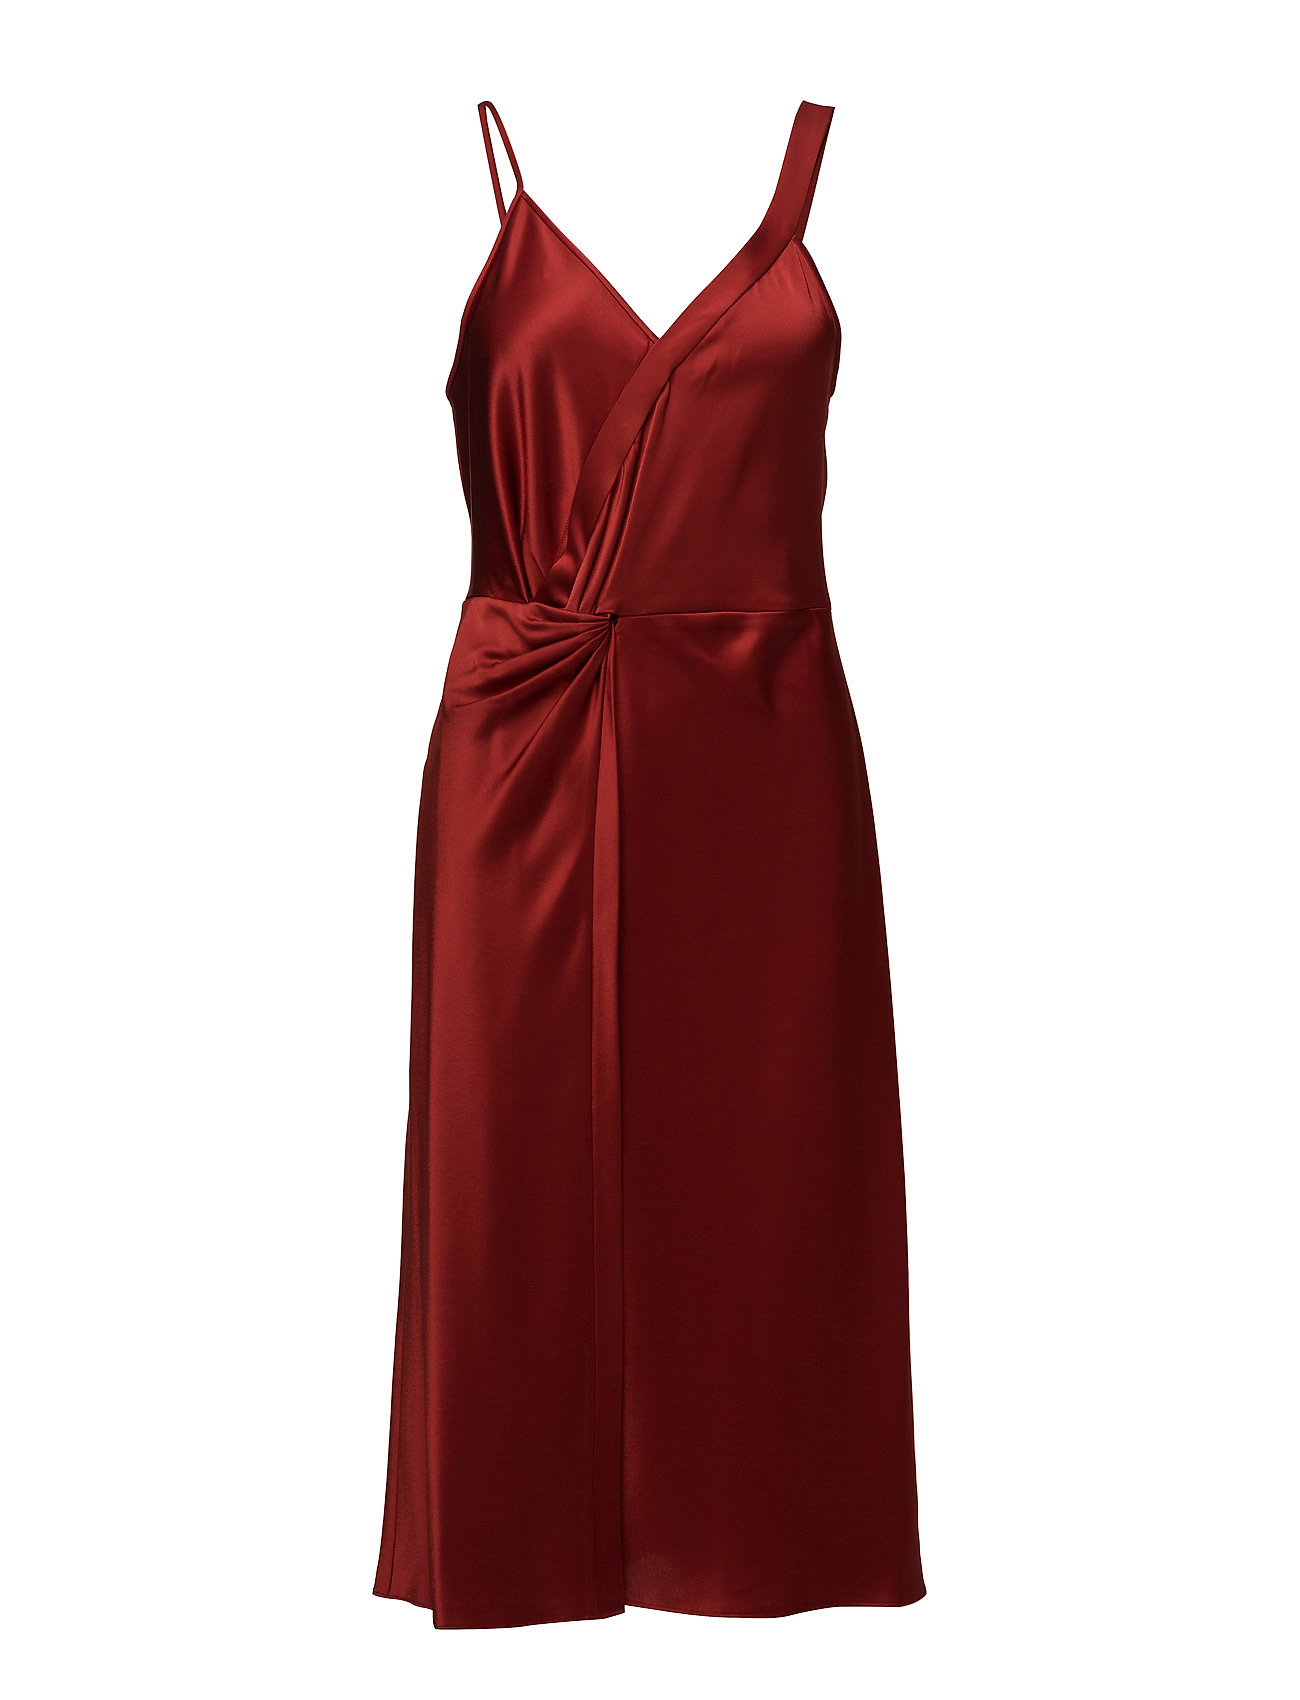 t by alexander wang Heavy draped satin slvlsknot front dress på boozt.com dk